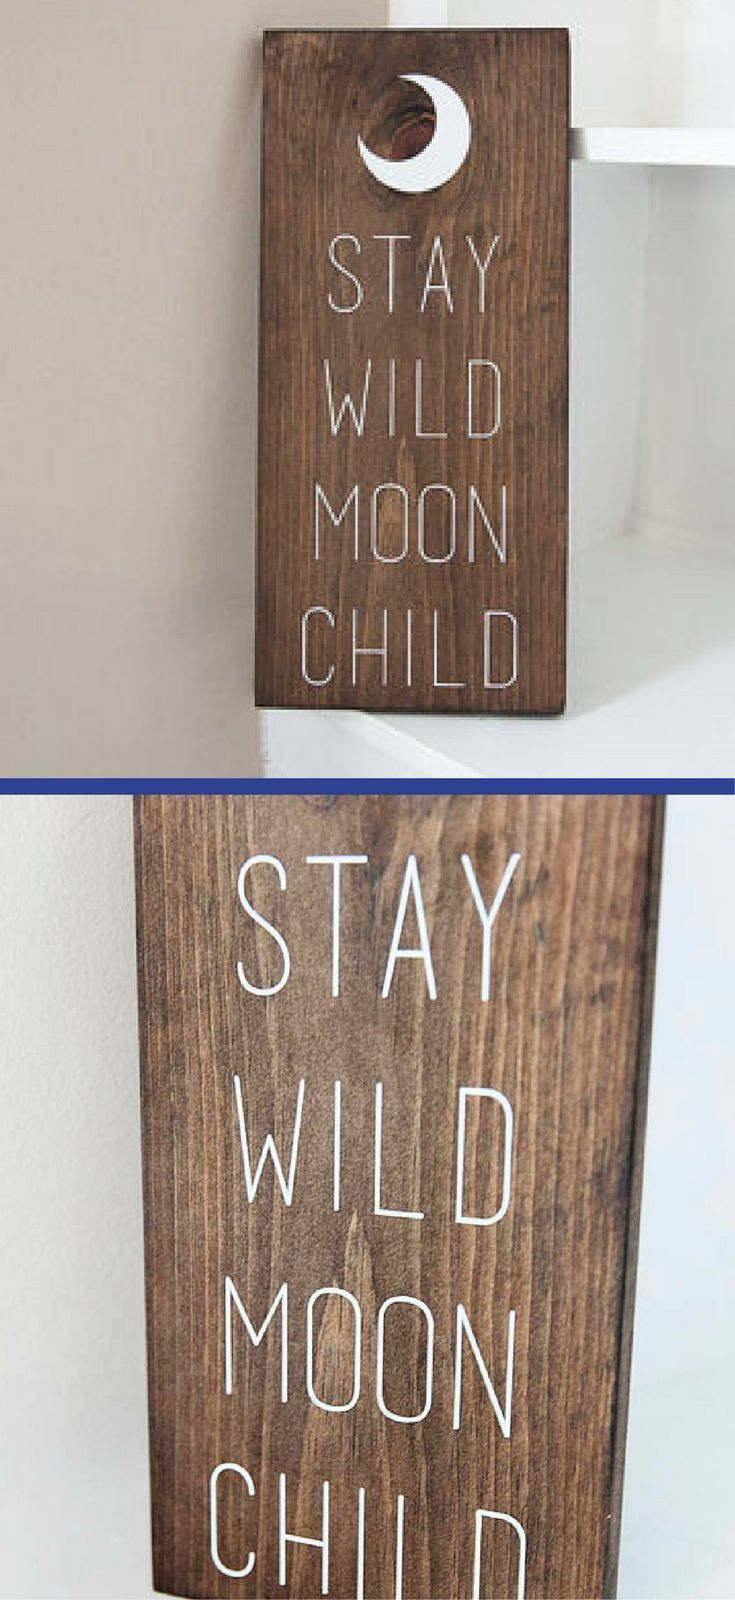 Stay Wild Moon Child Rustic Sign – Nursery Wall Art, Woodland Nursery Decor, Boho Nursery Decor, Hippie Sign, Moon Decor, Modern Nursery, Rustic Wood …